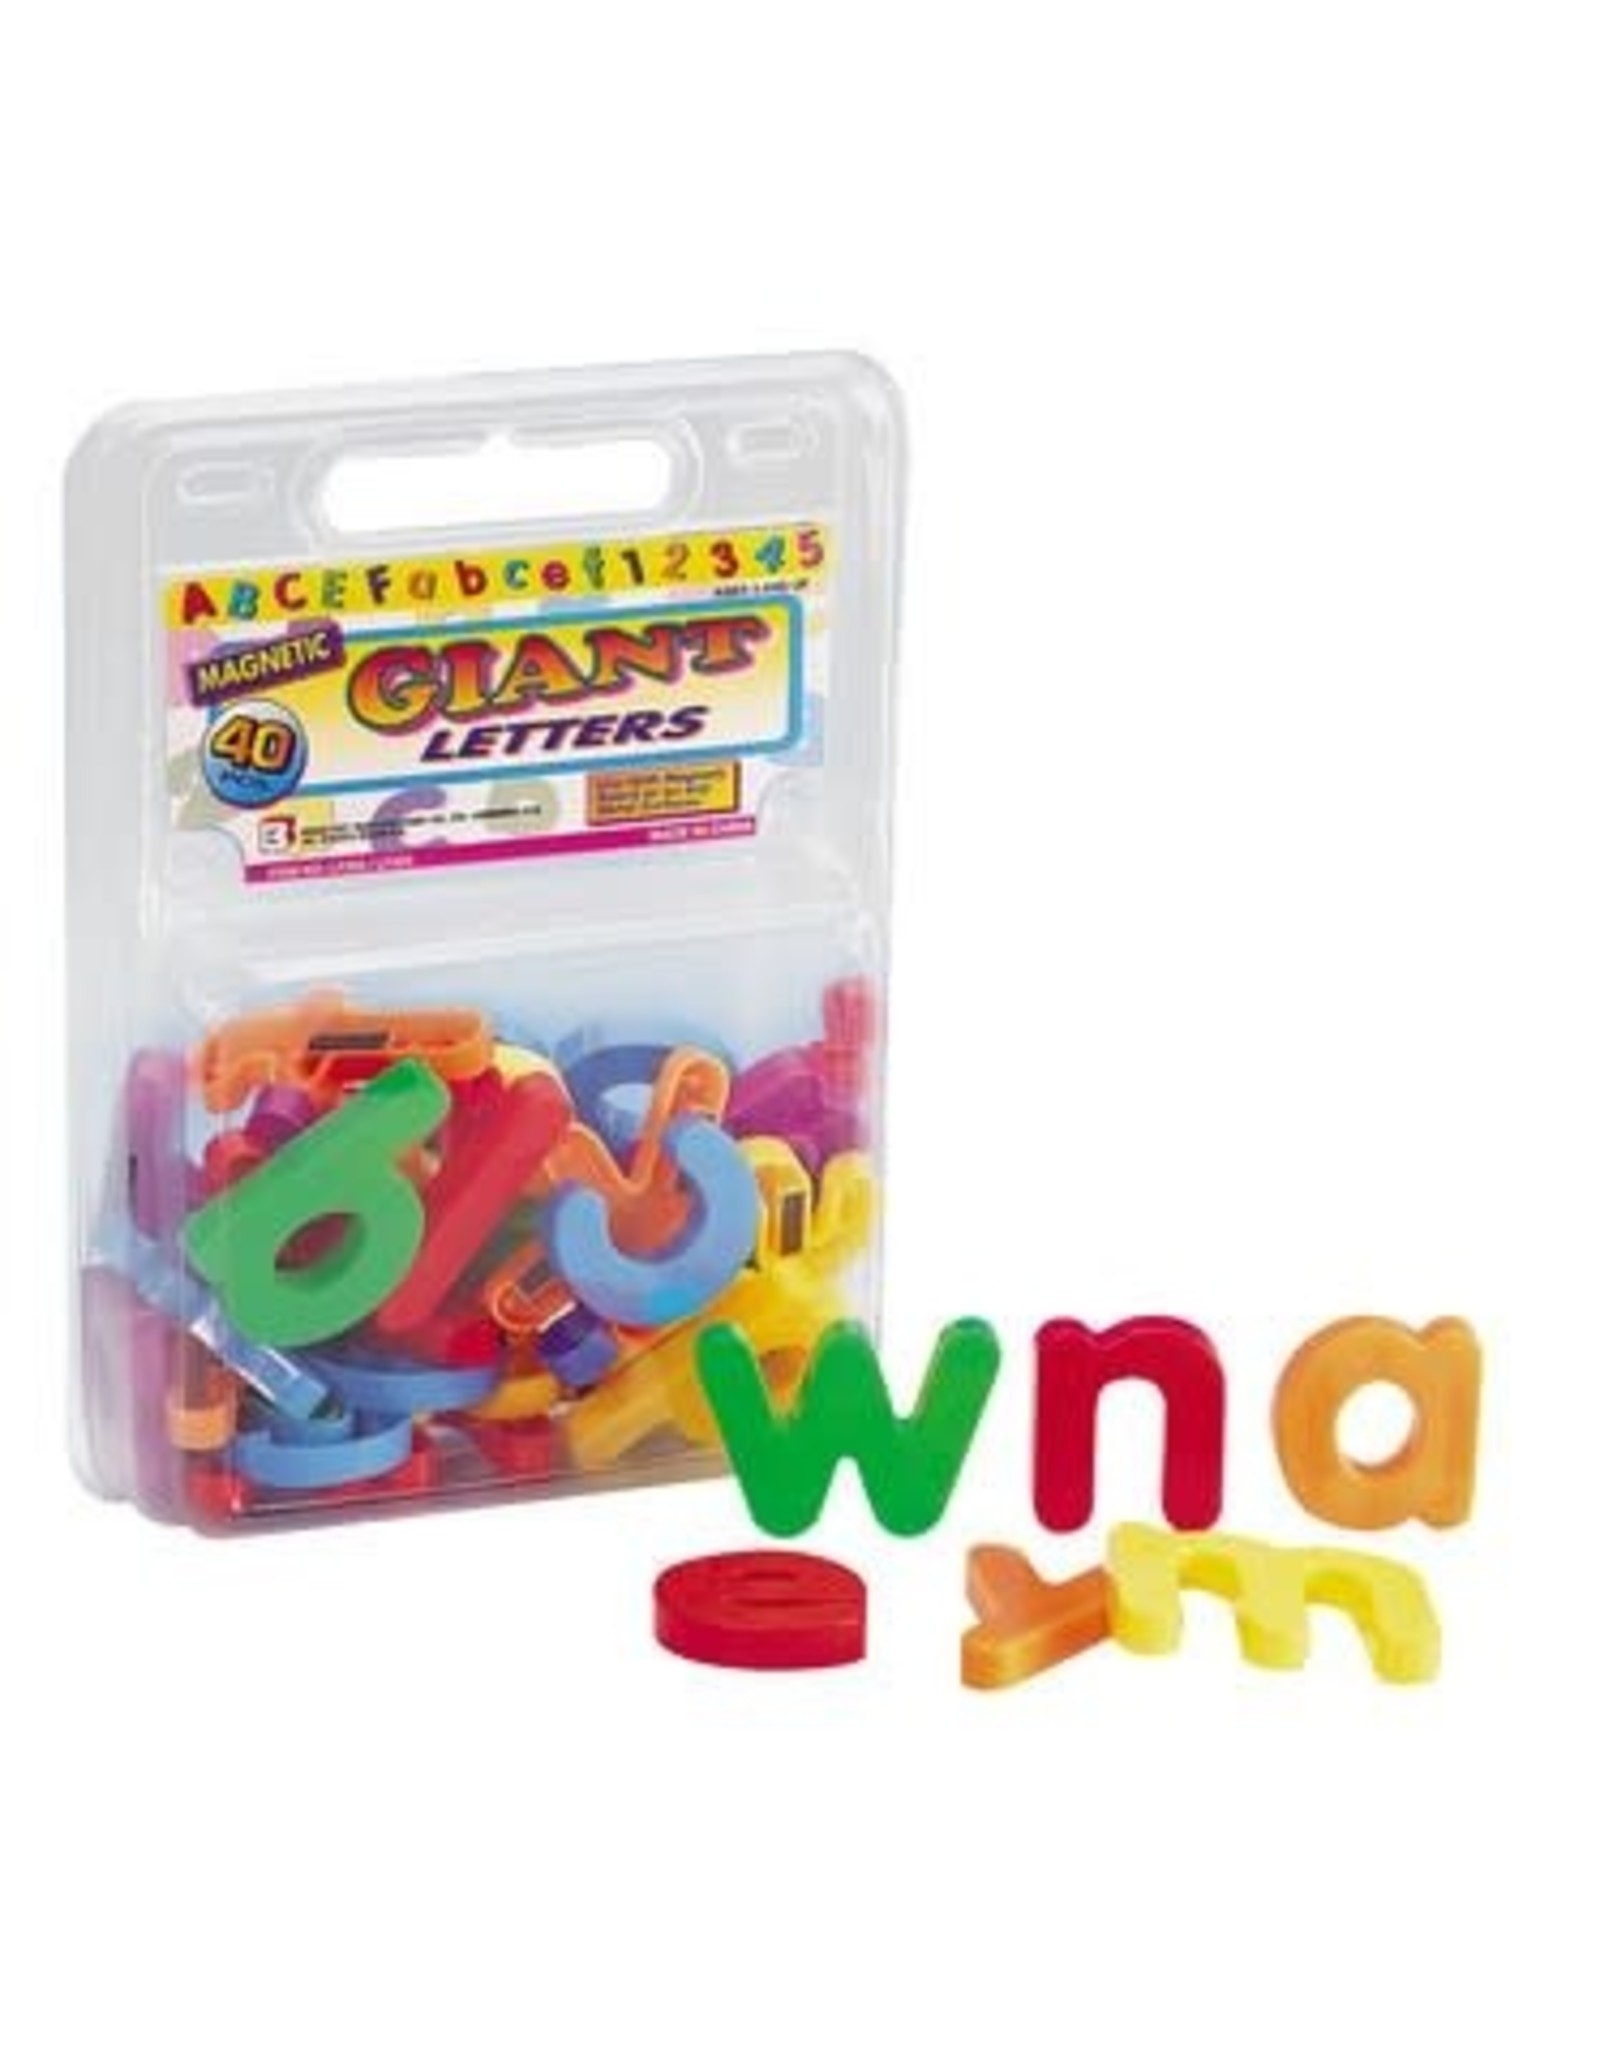 Playwell Giant Magnetic Letters